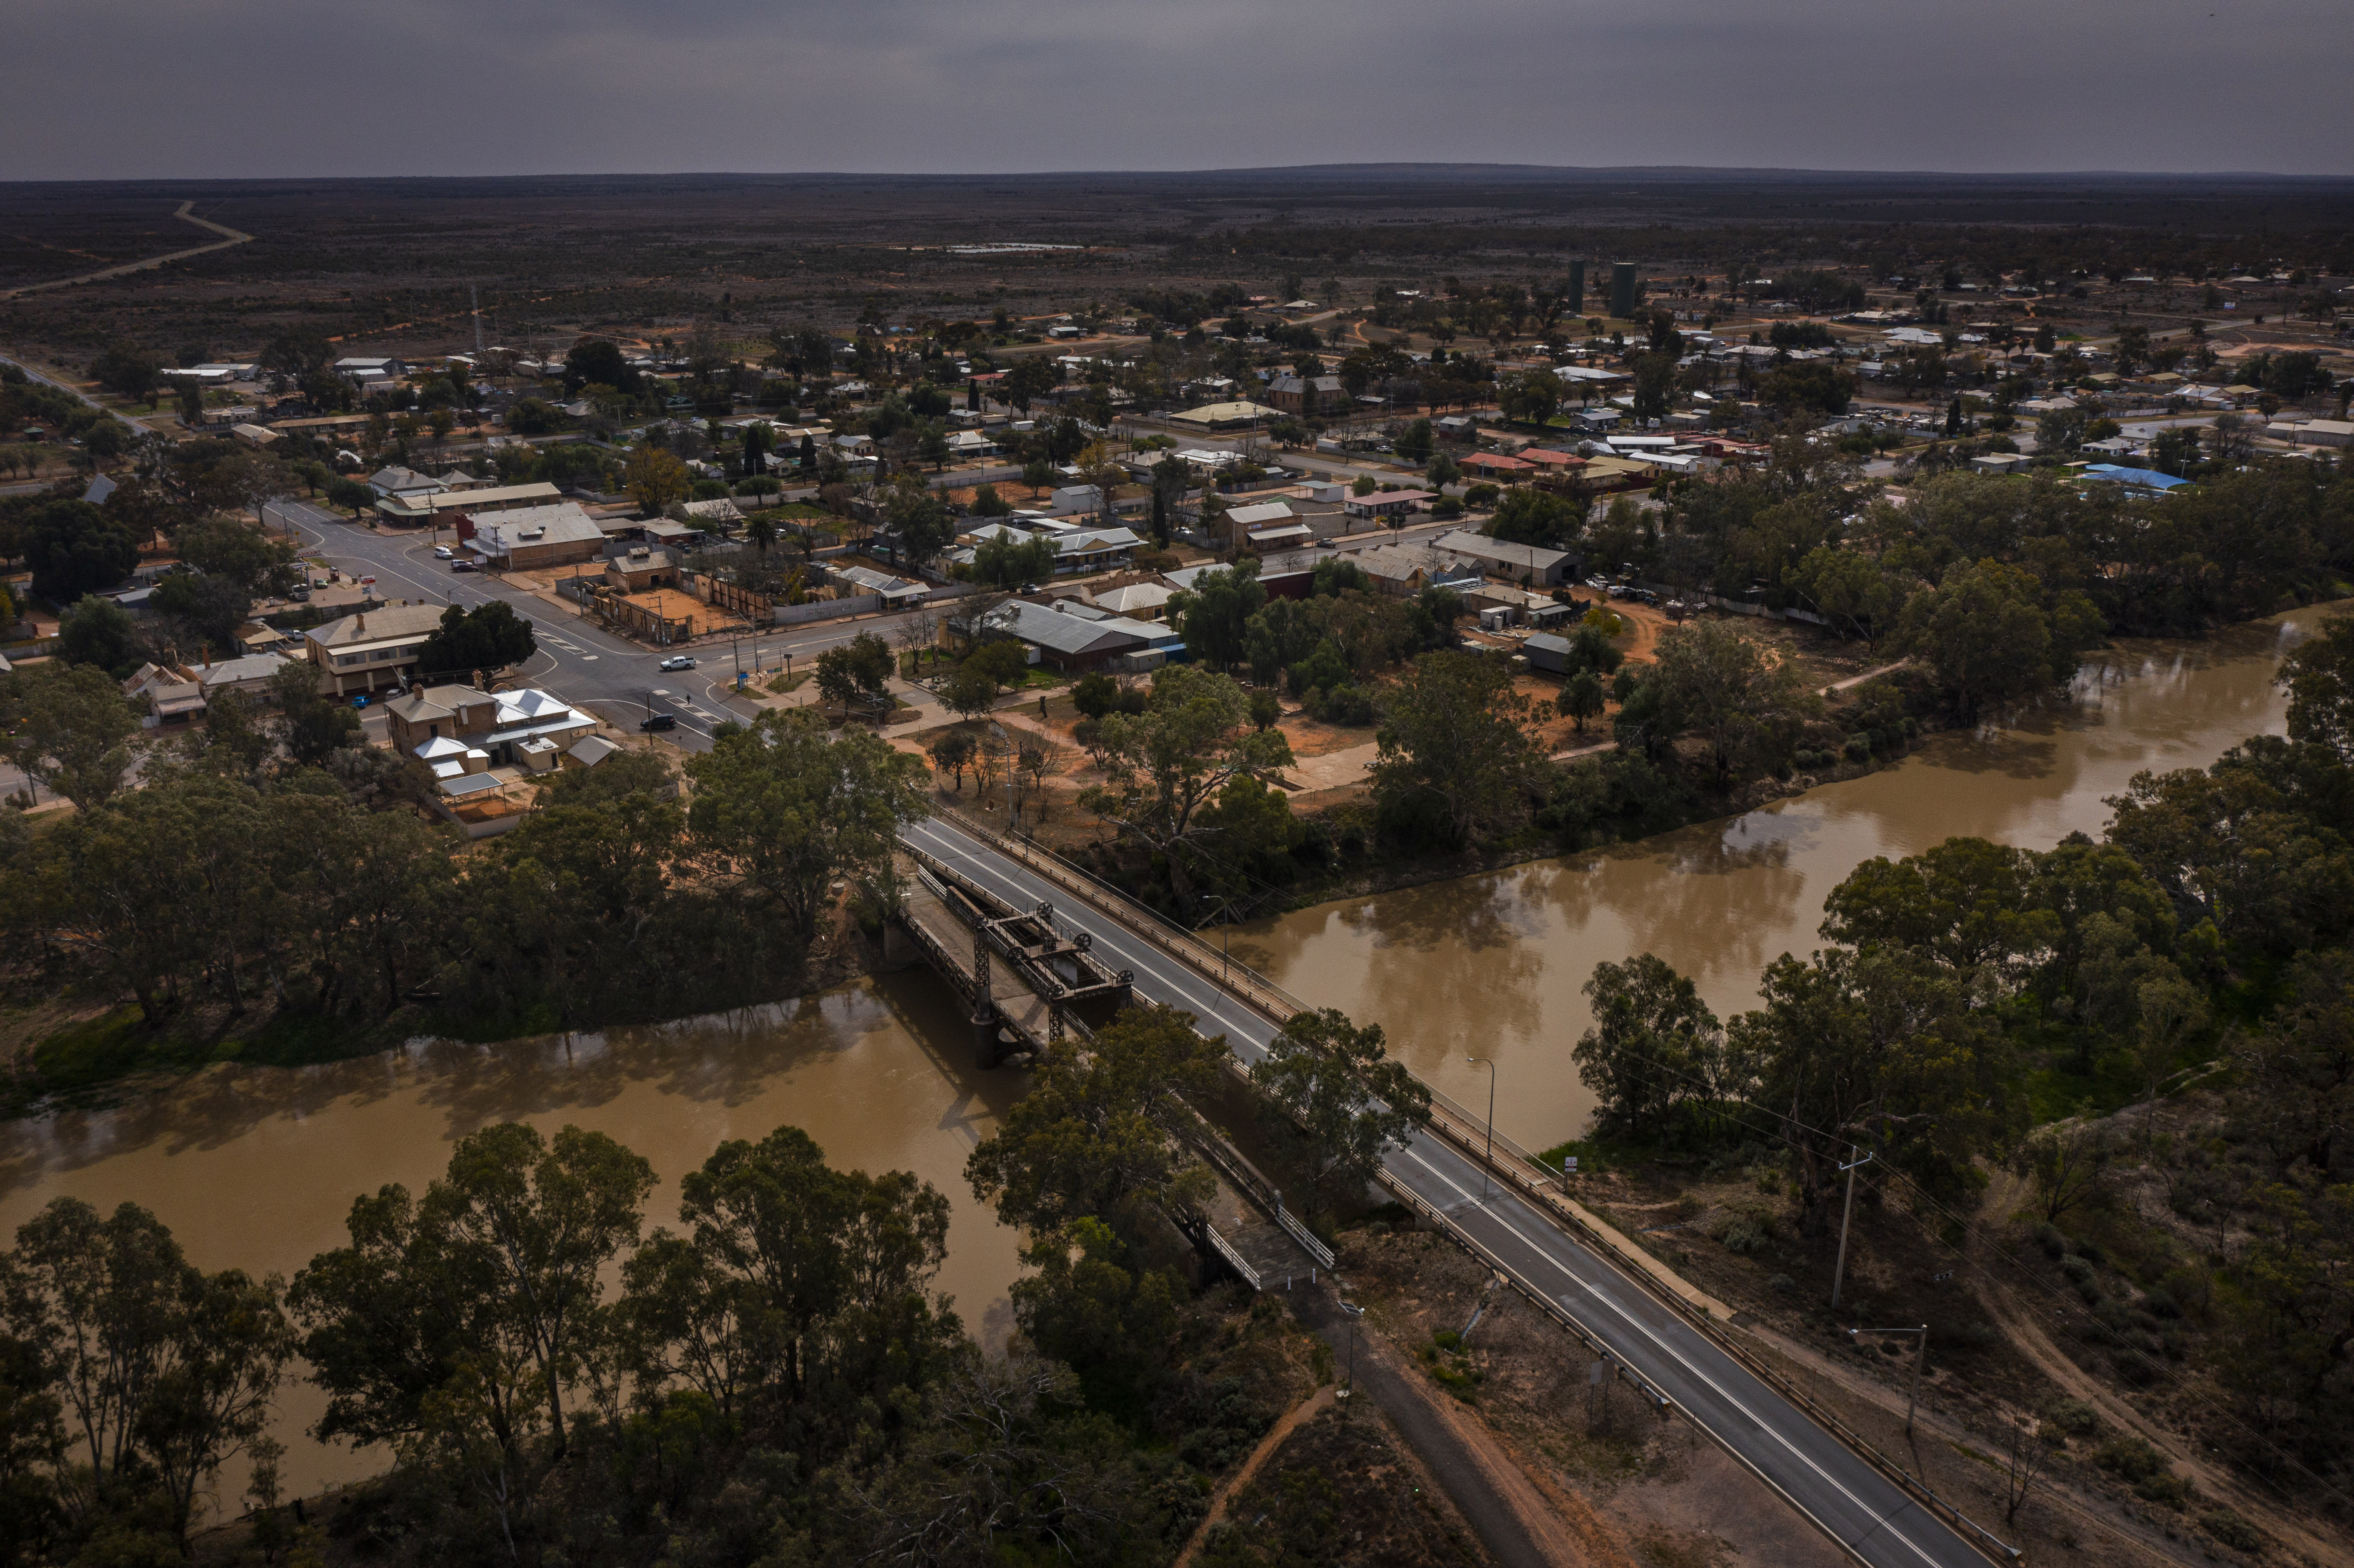 Wilcannia sits on the Darling River in far western New South Wales, Australia. Many of its residents are Indigenous. MUST CREDIT: Photo by Matthew Abbott for The Washington Post.